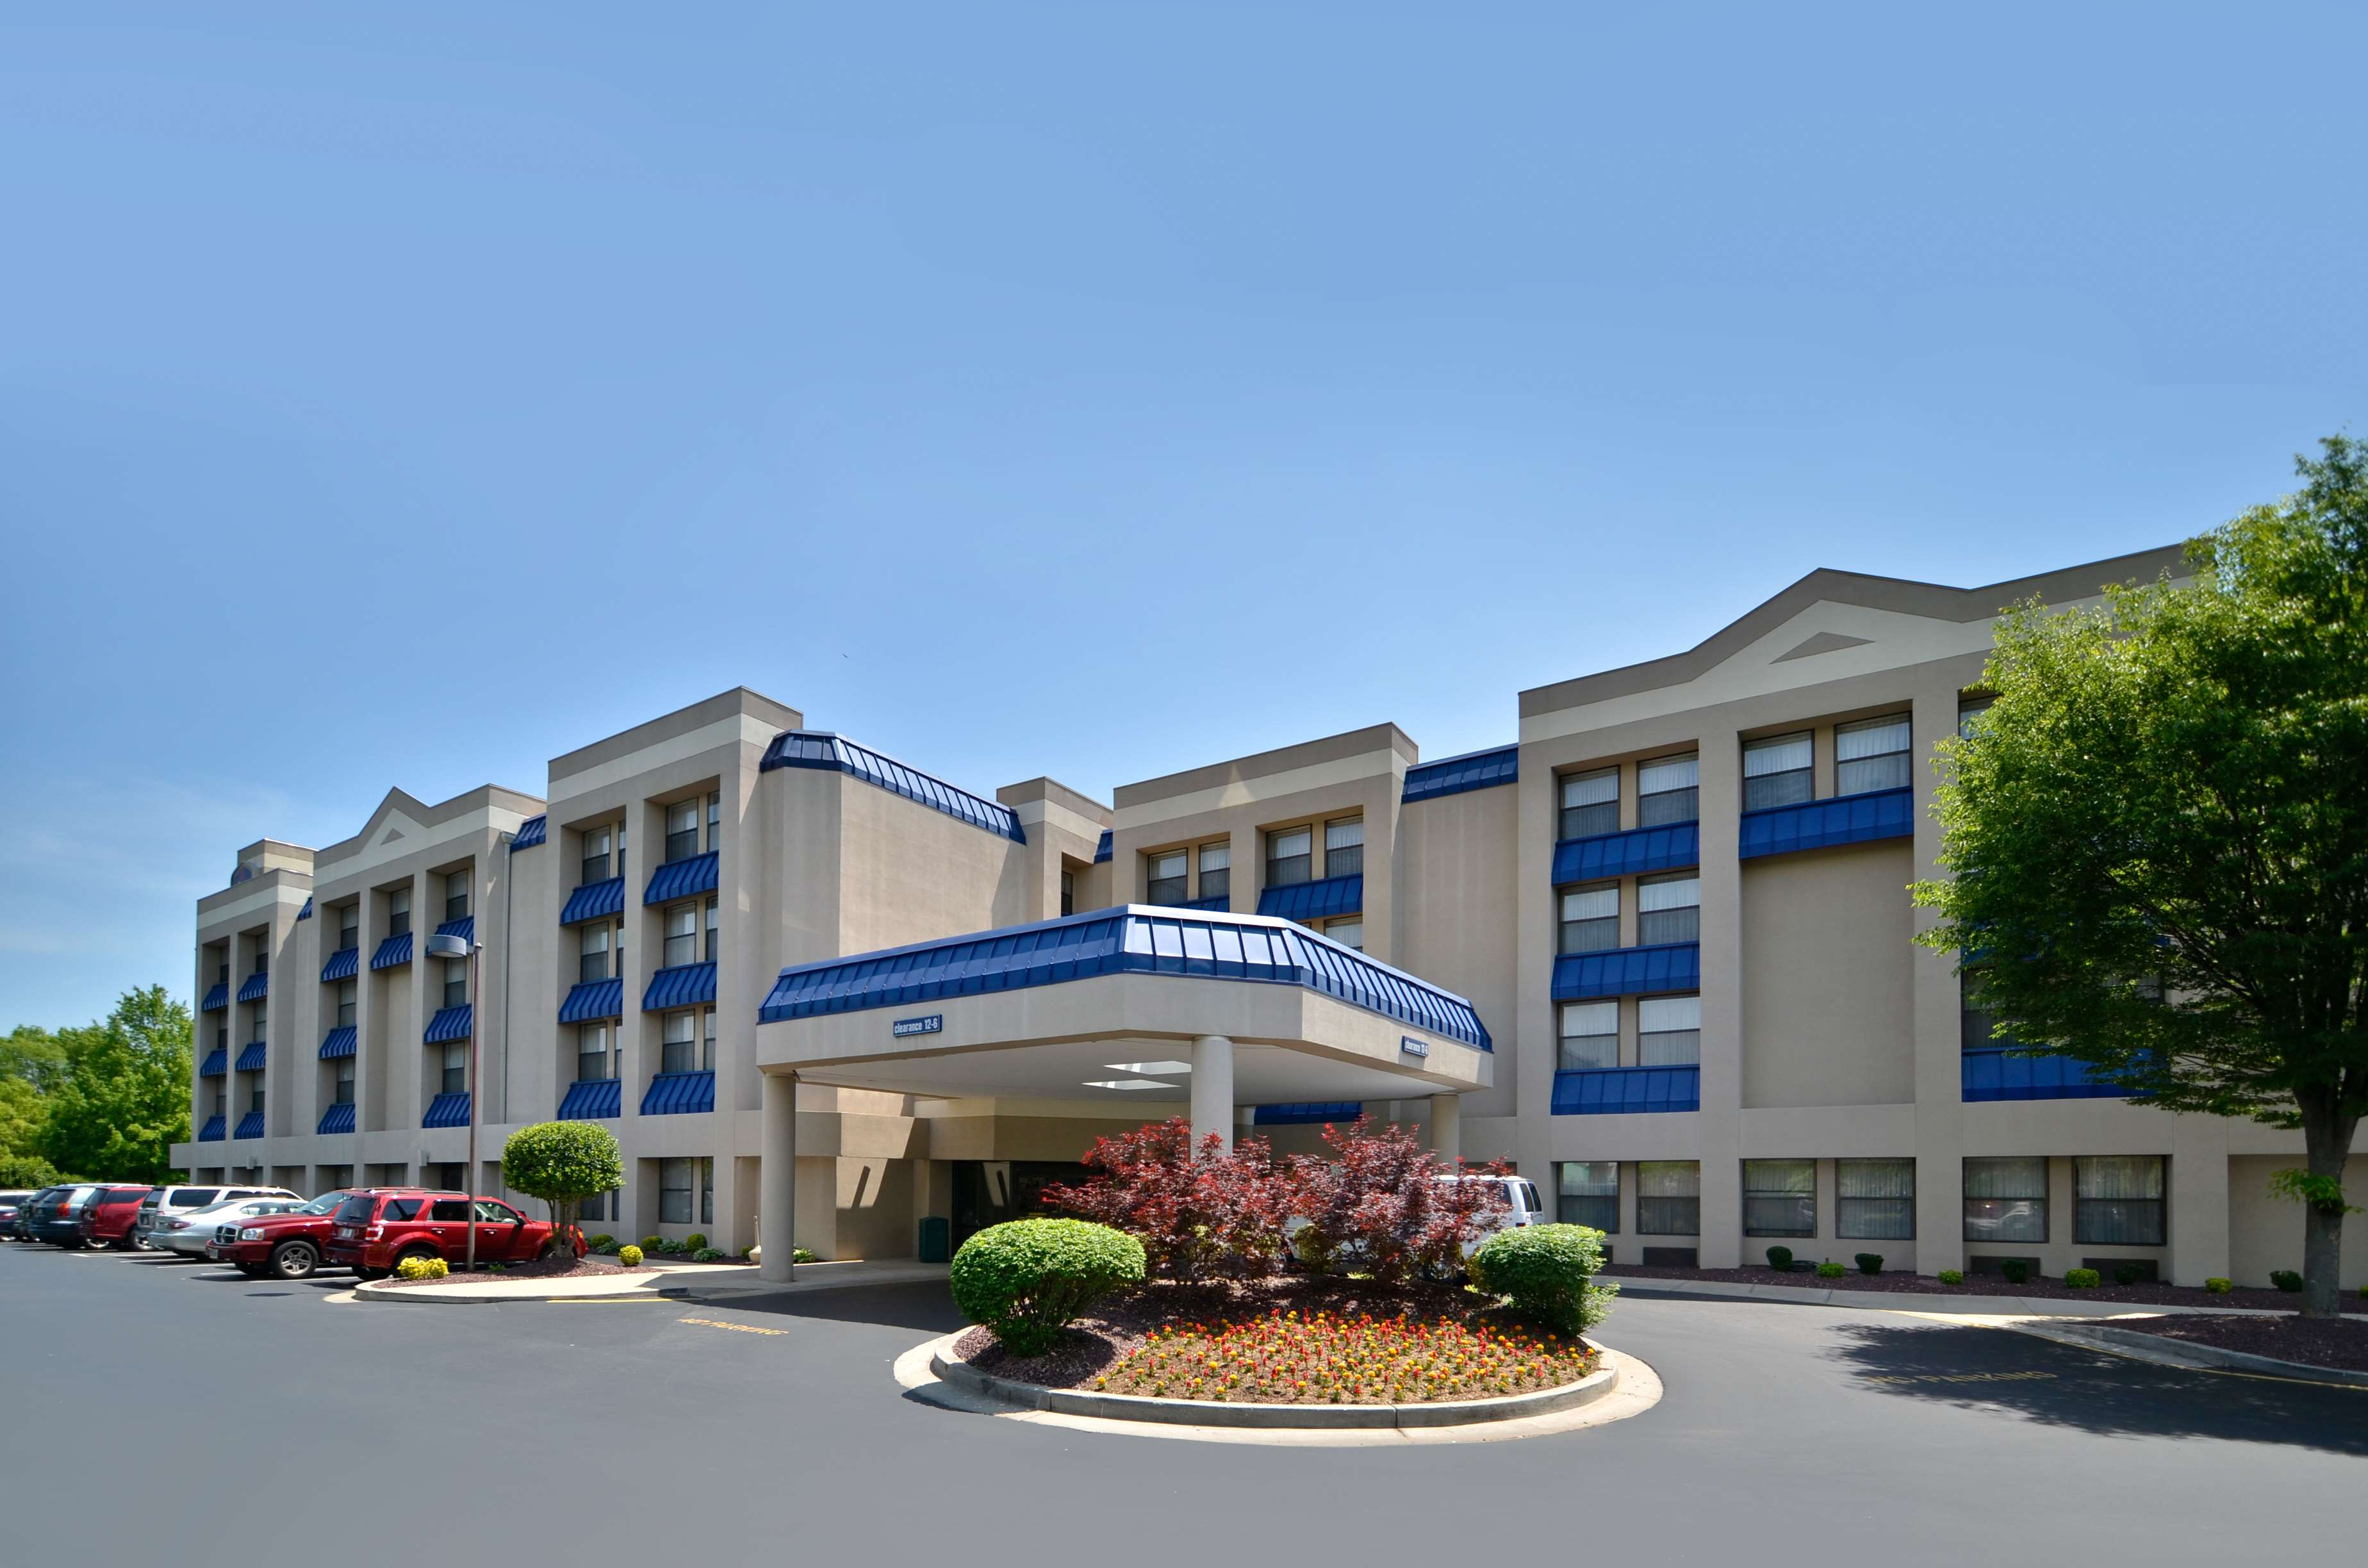 Best Airport Hotel Bwi